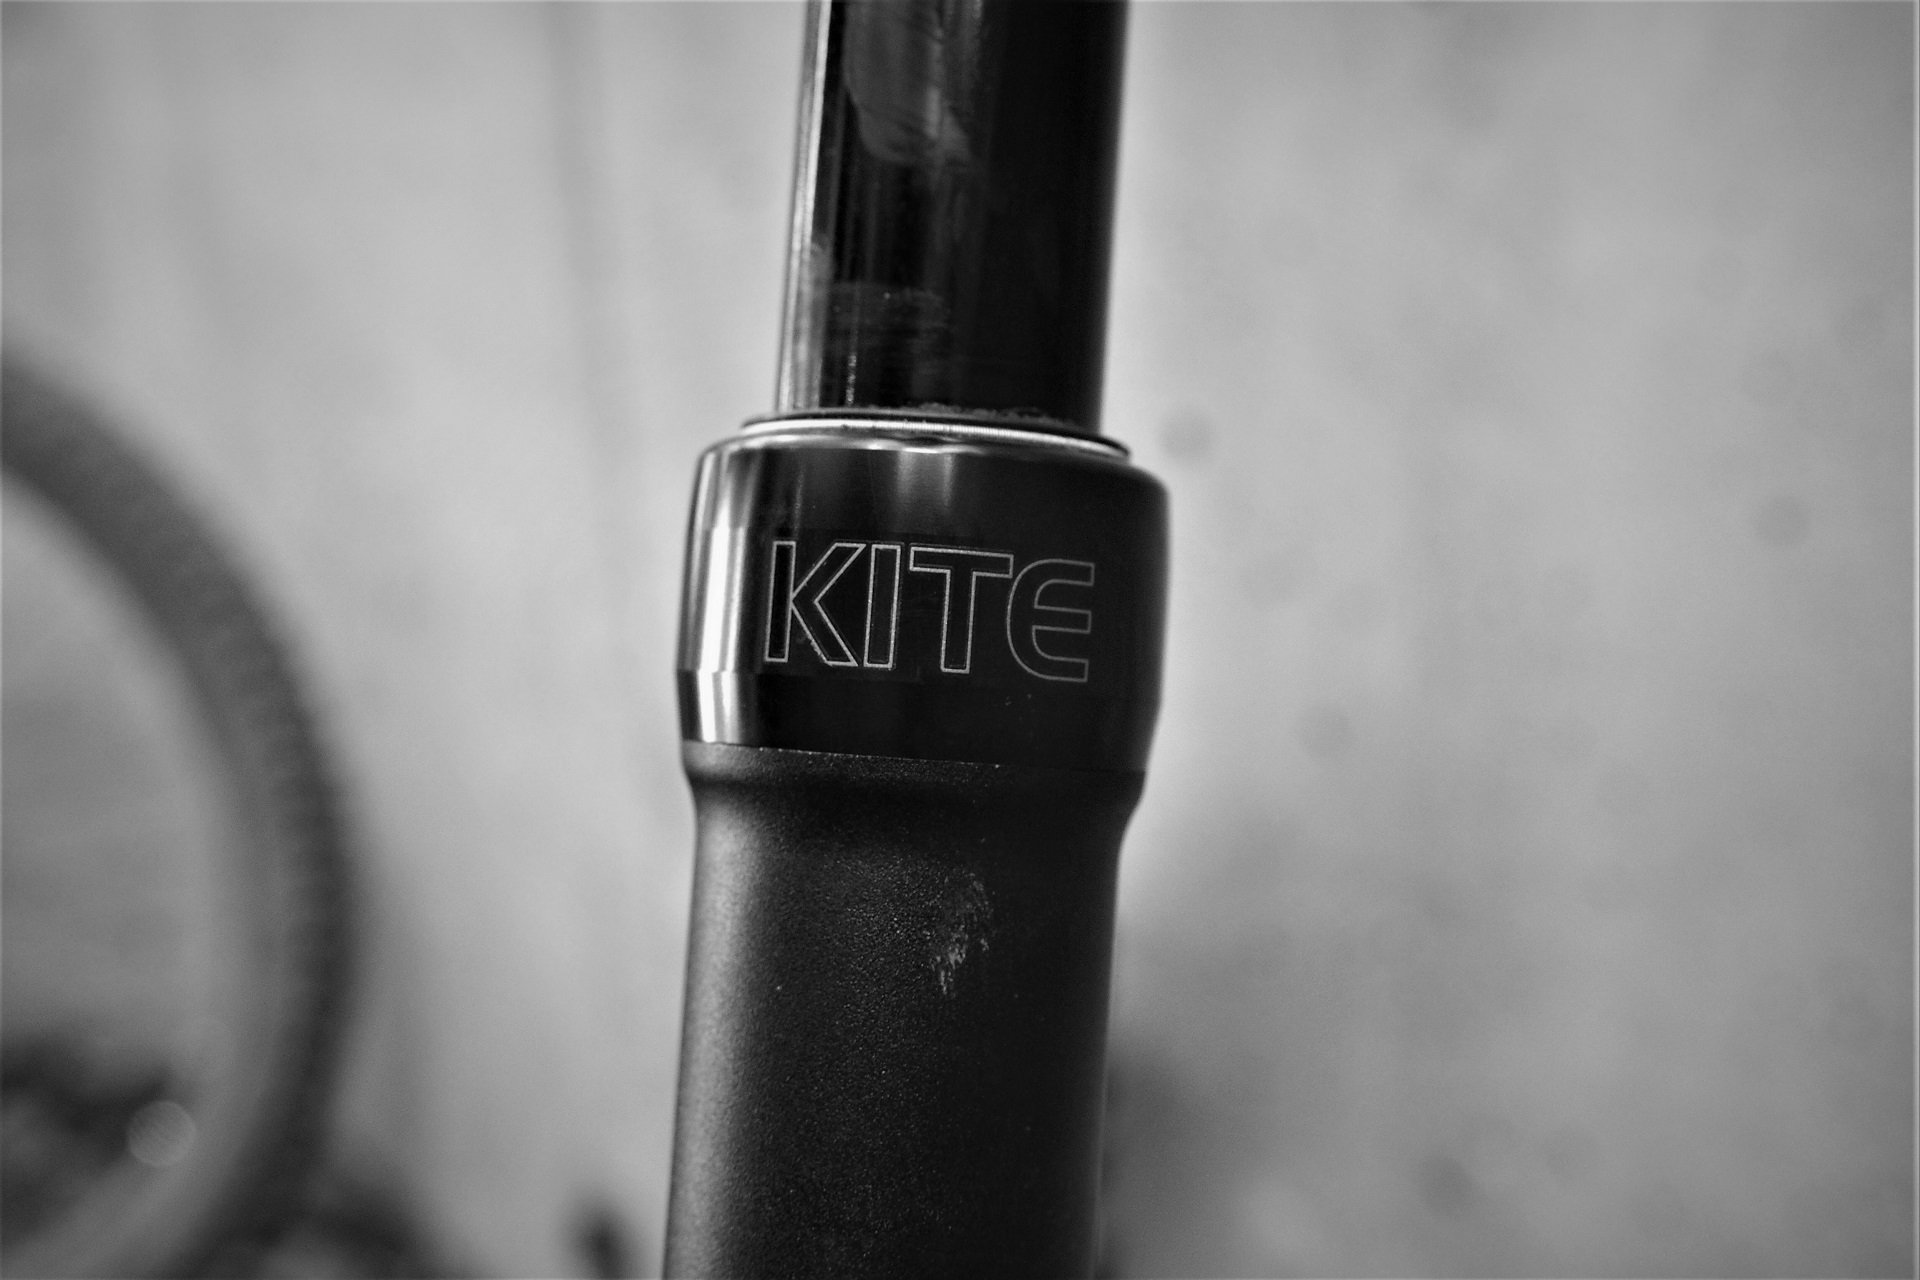 Ritchey WCS Kite Dropper Post AndrewM